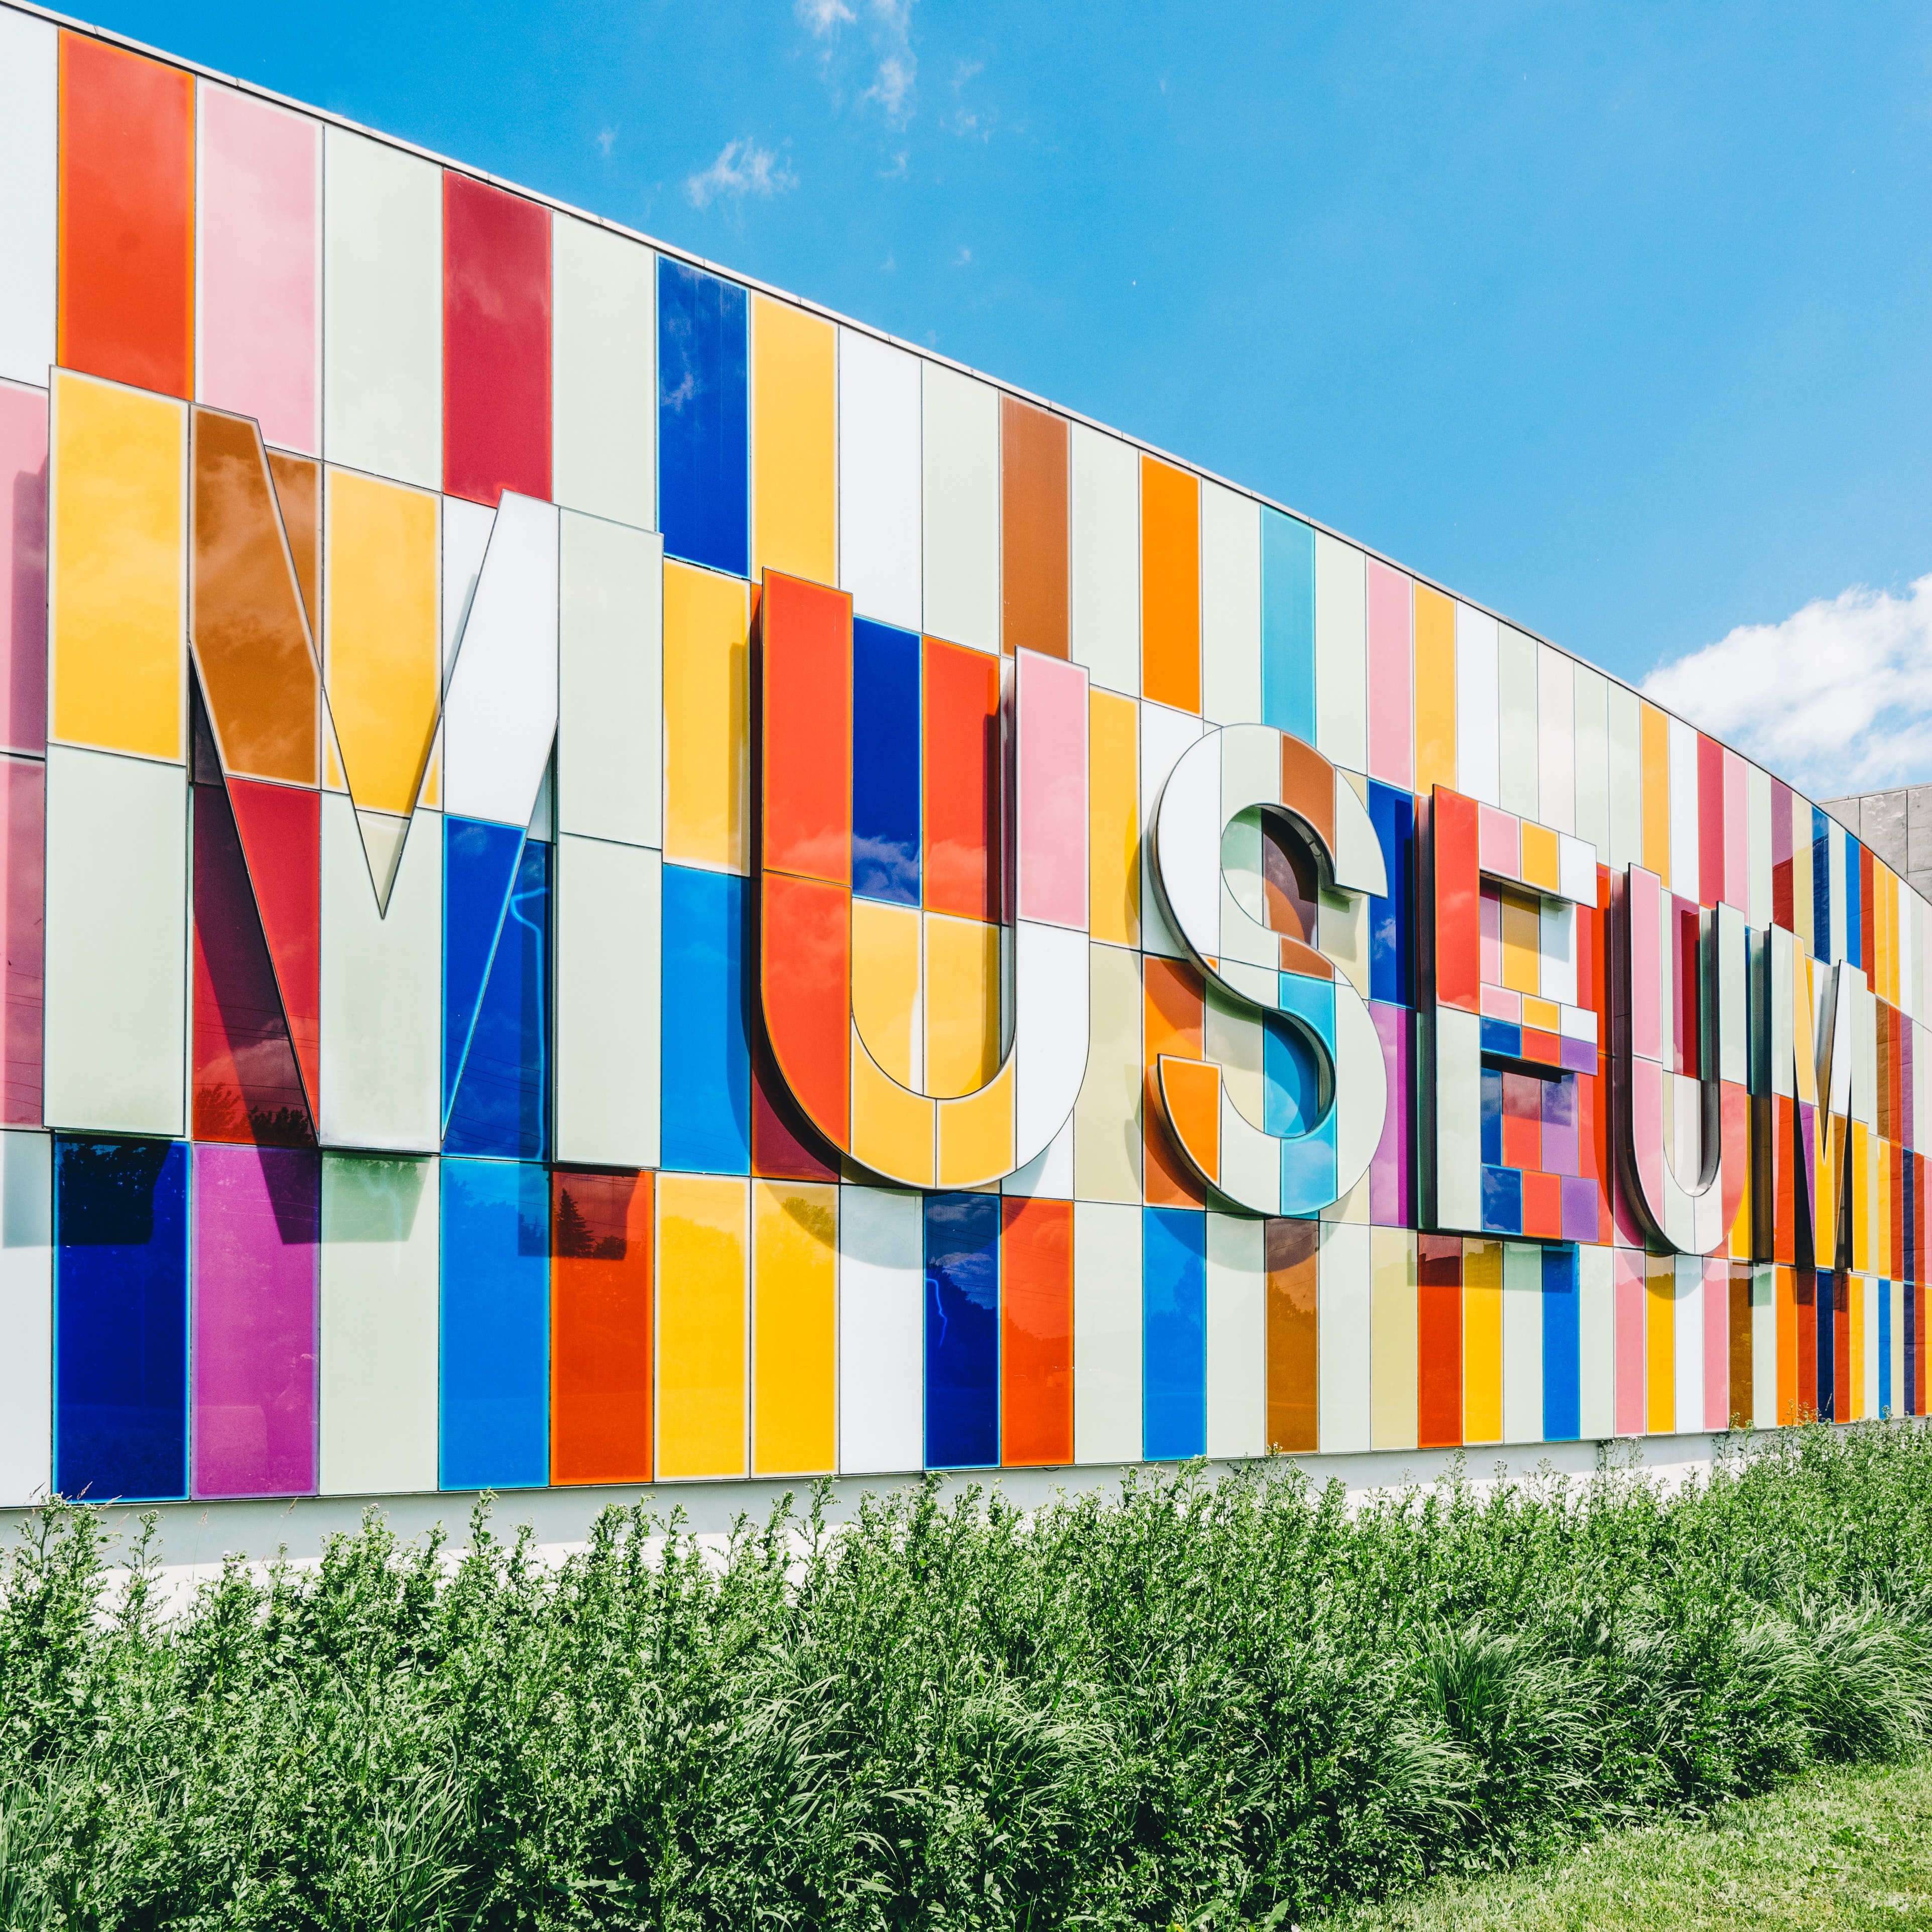 Best museums for families in Toronto